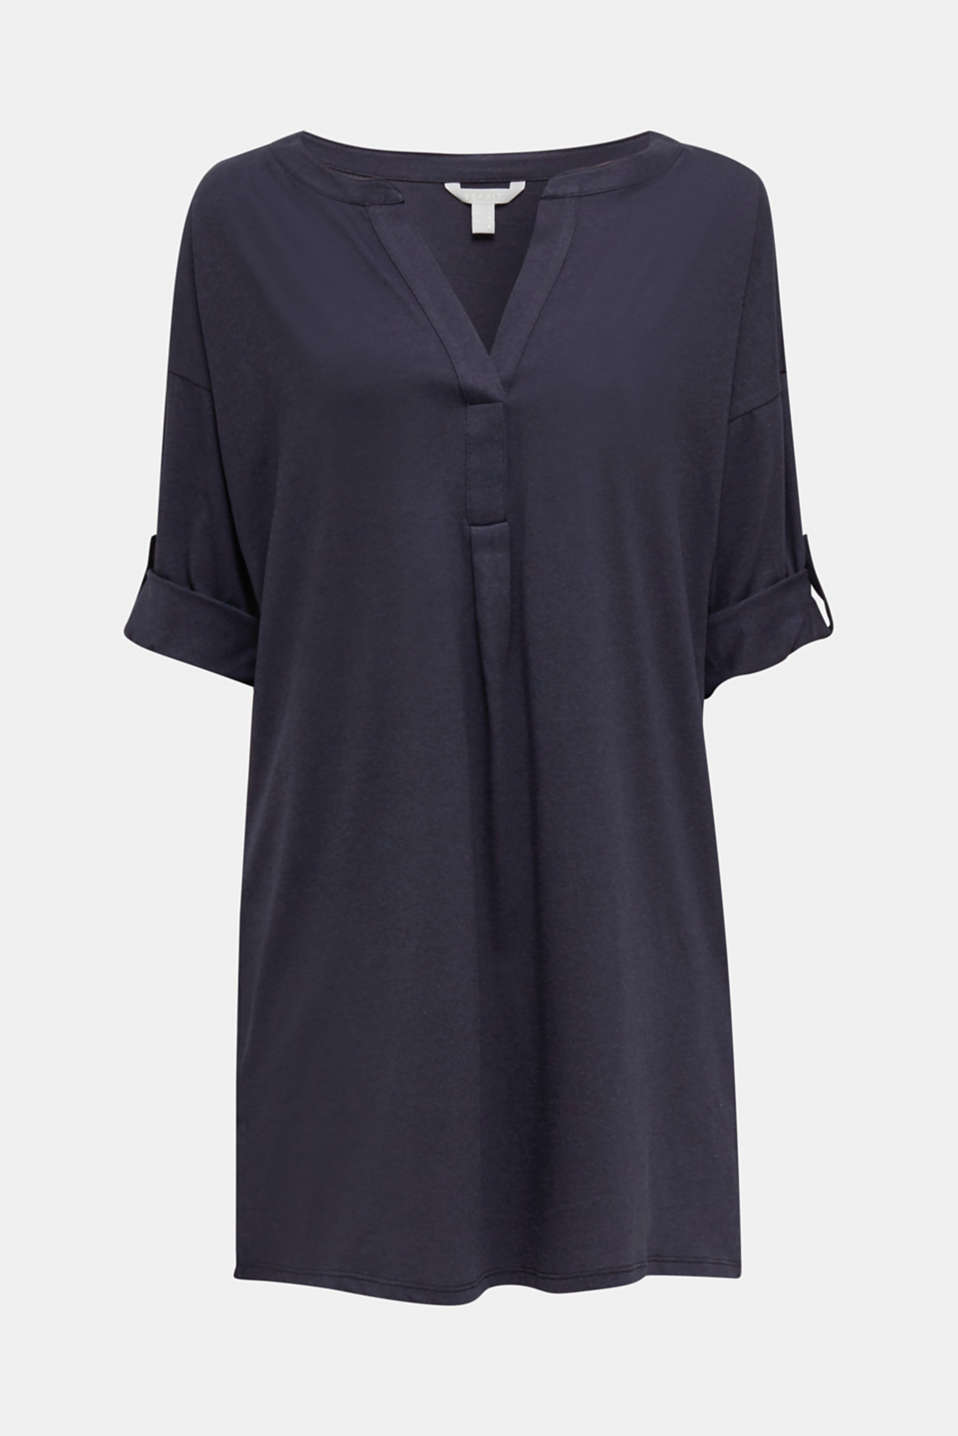 Tunic top with turn-up sleeves, NAVY, detail image number 5